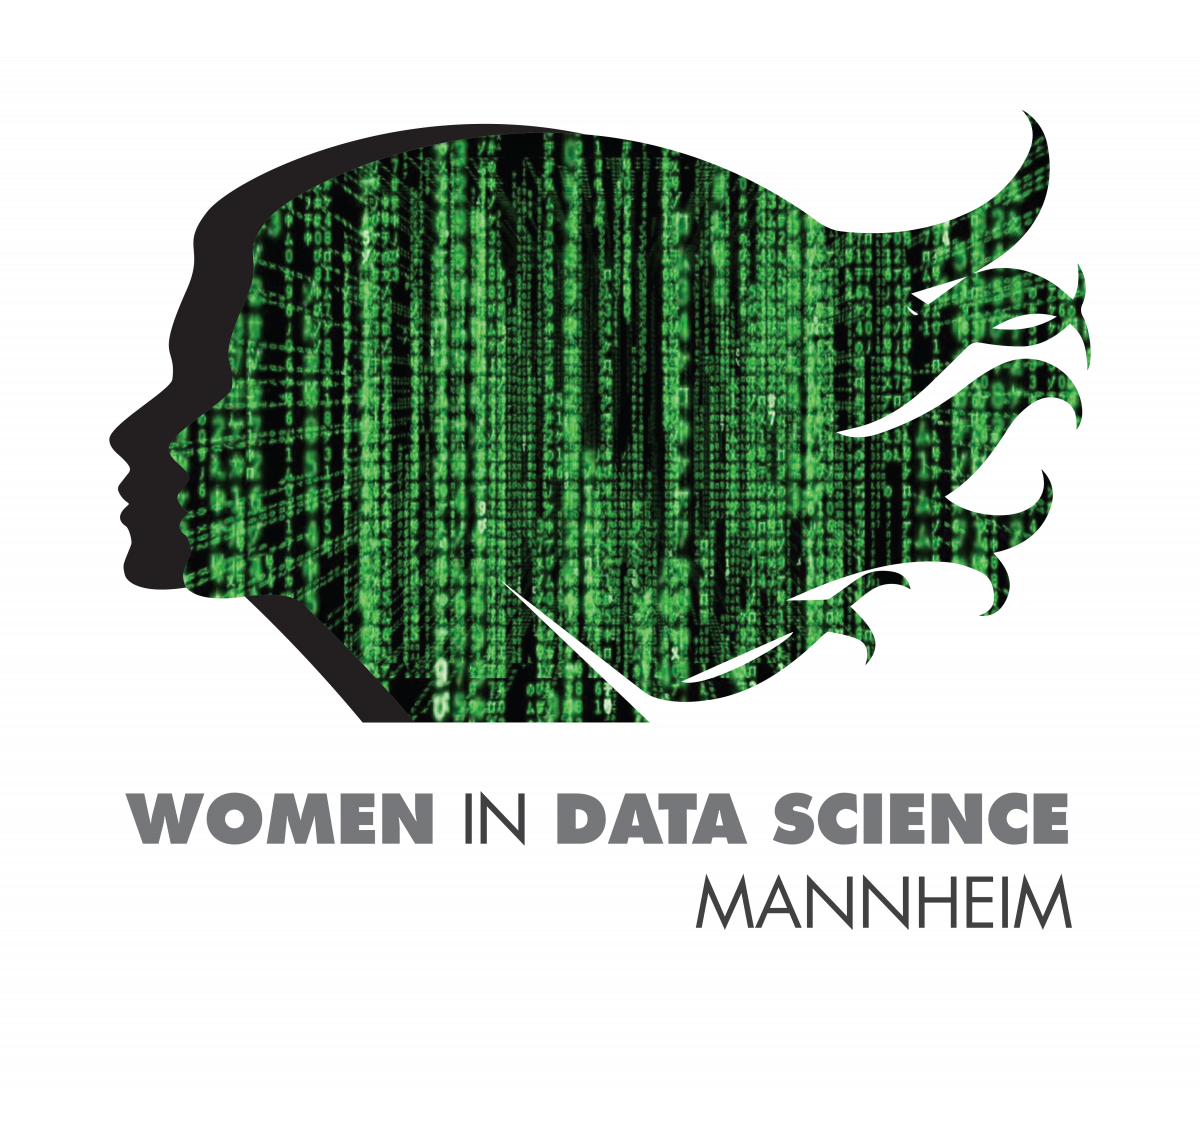 Women in Data Science Mannheim conference